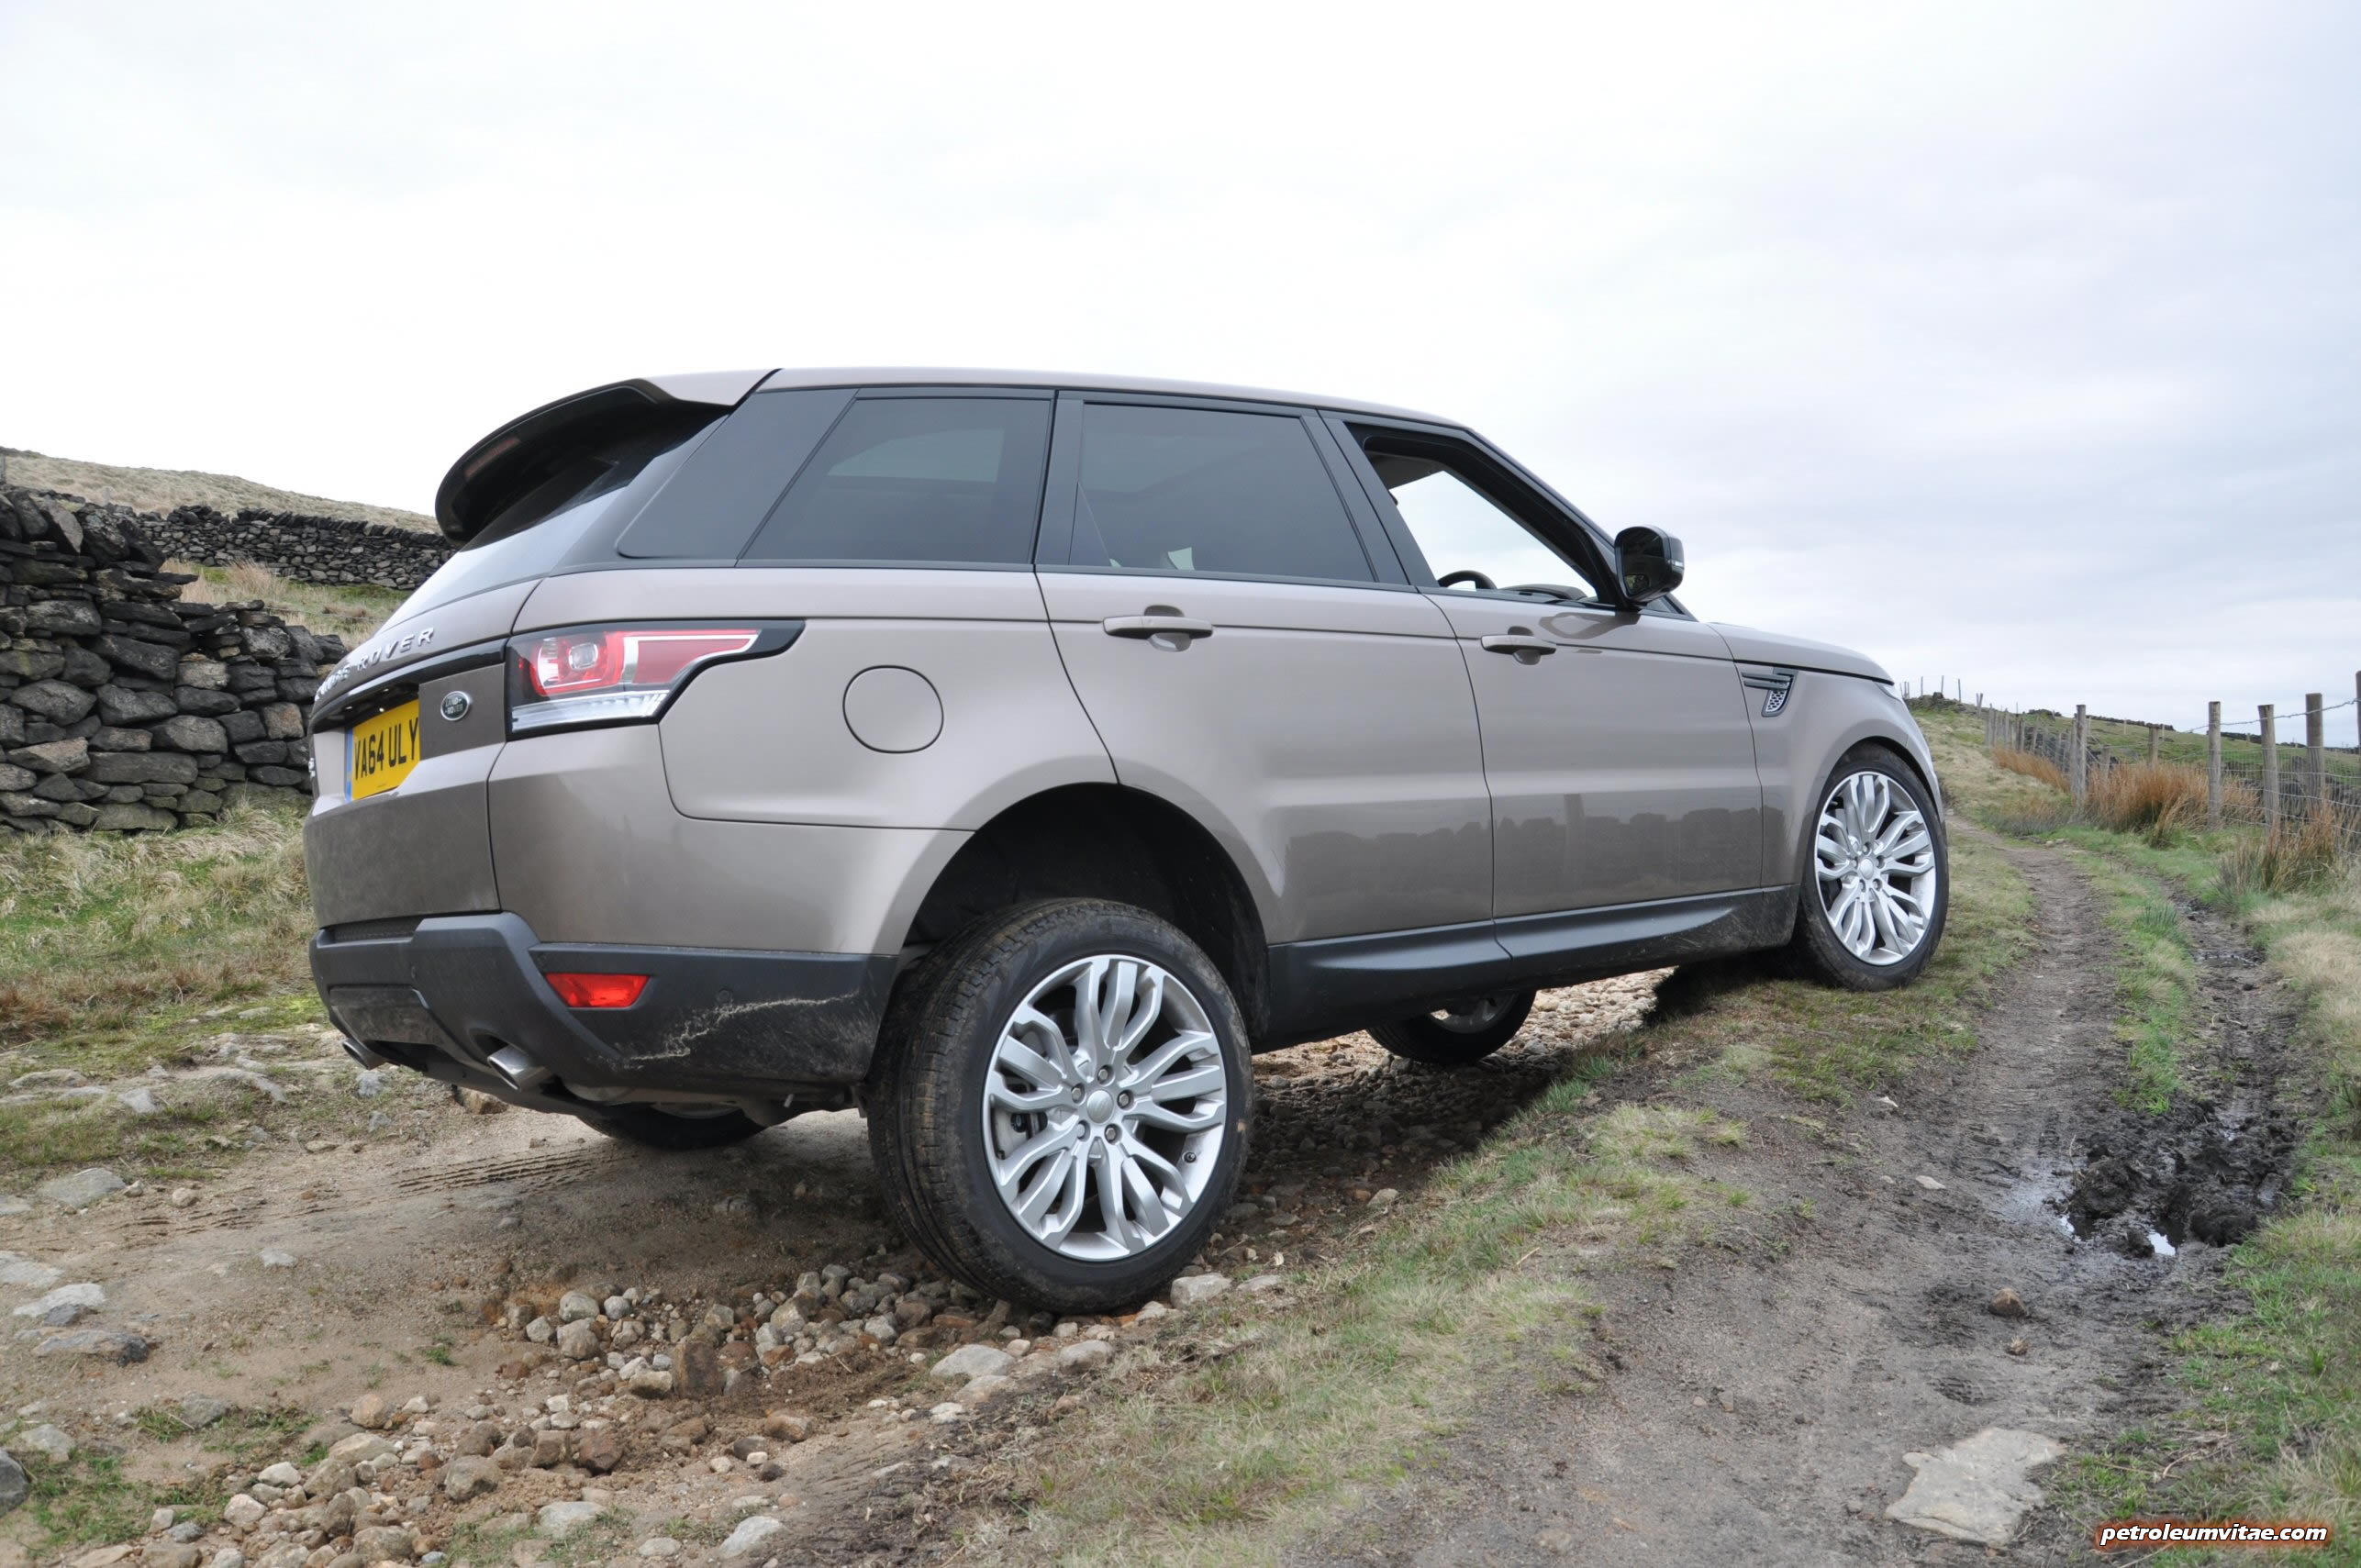 The Range Rover Sport SDV6 HSE Dynamic – Firm but fantastic